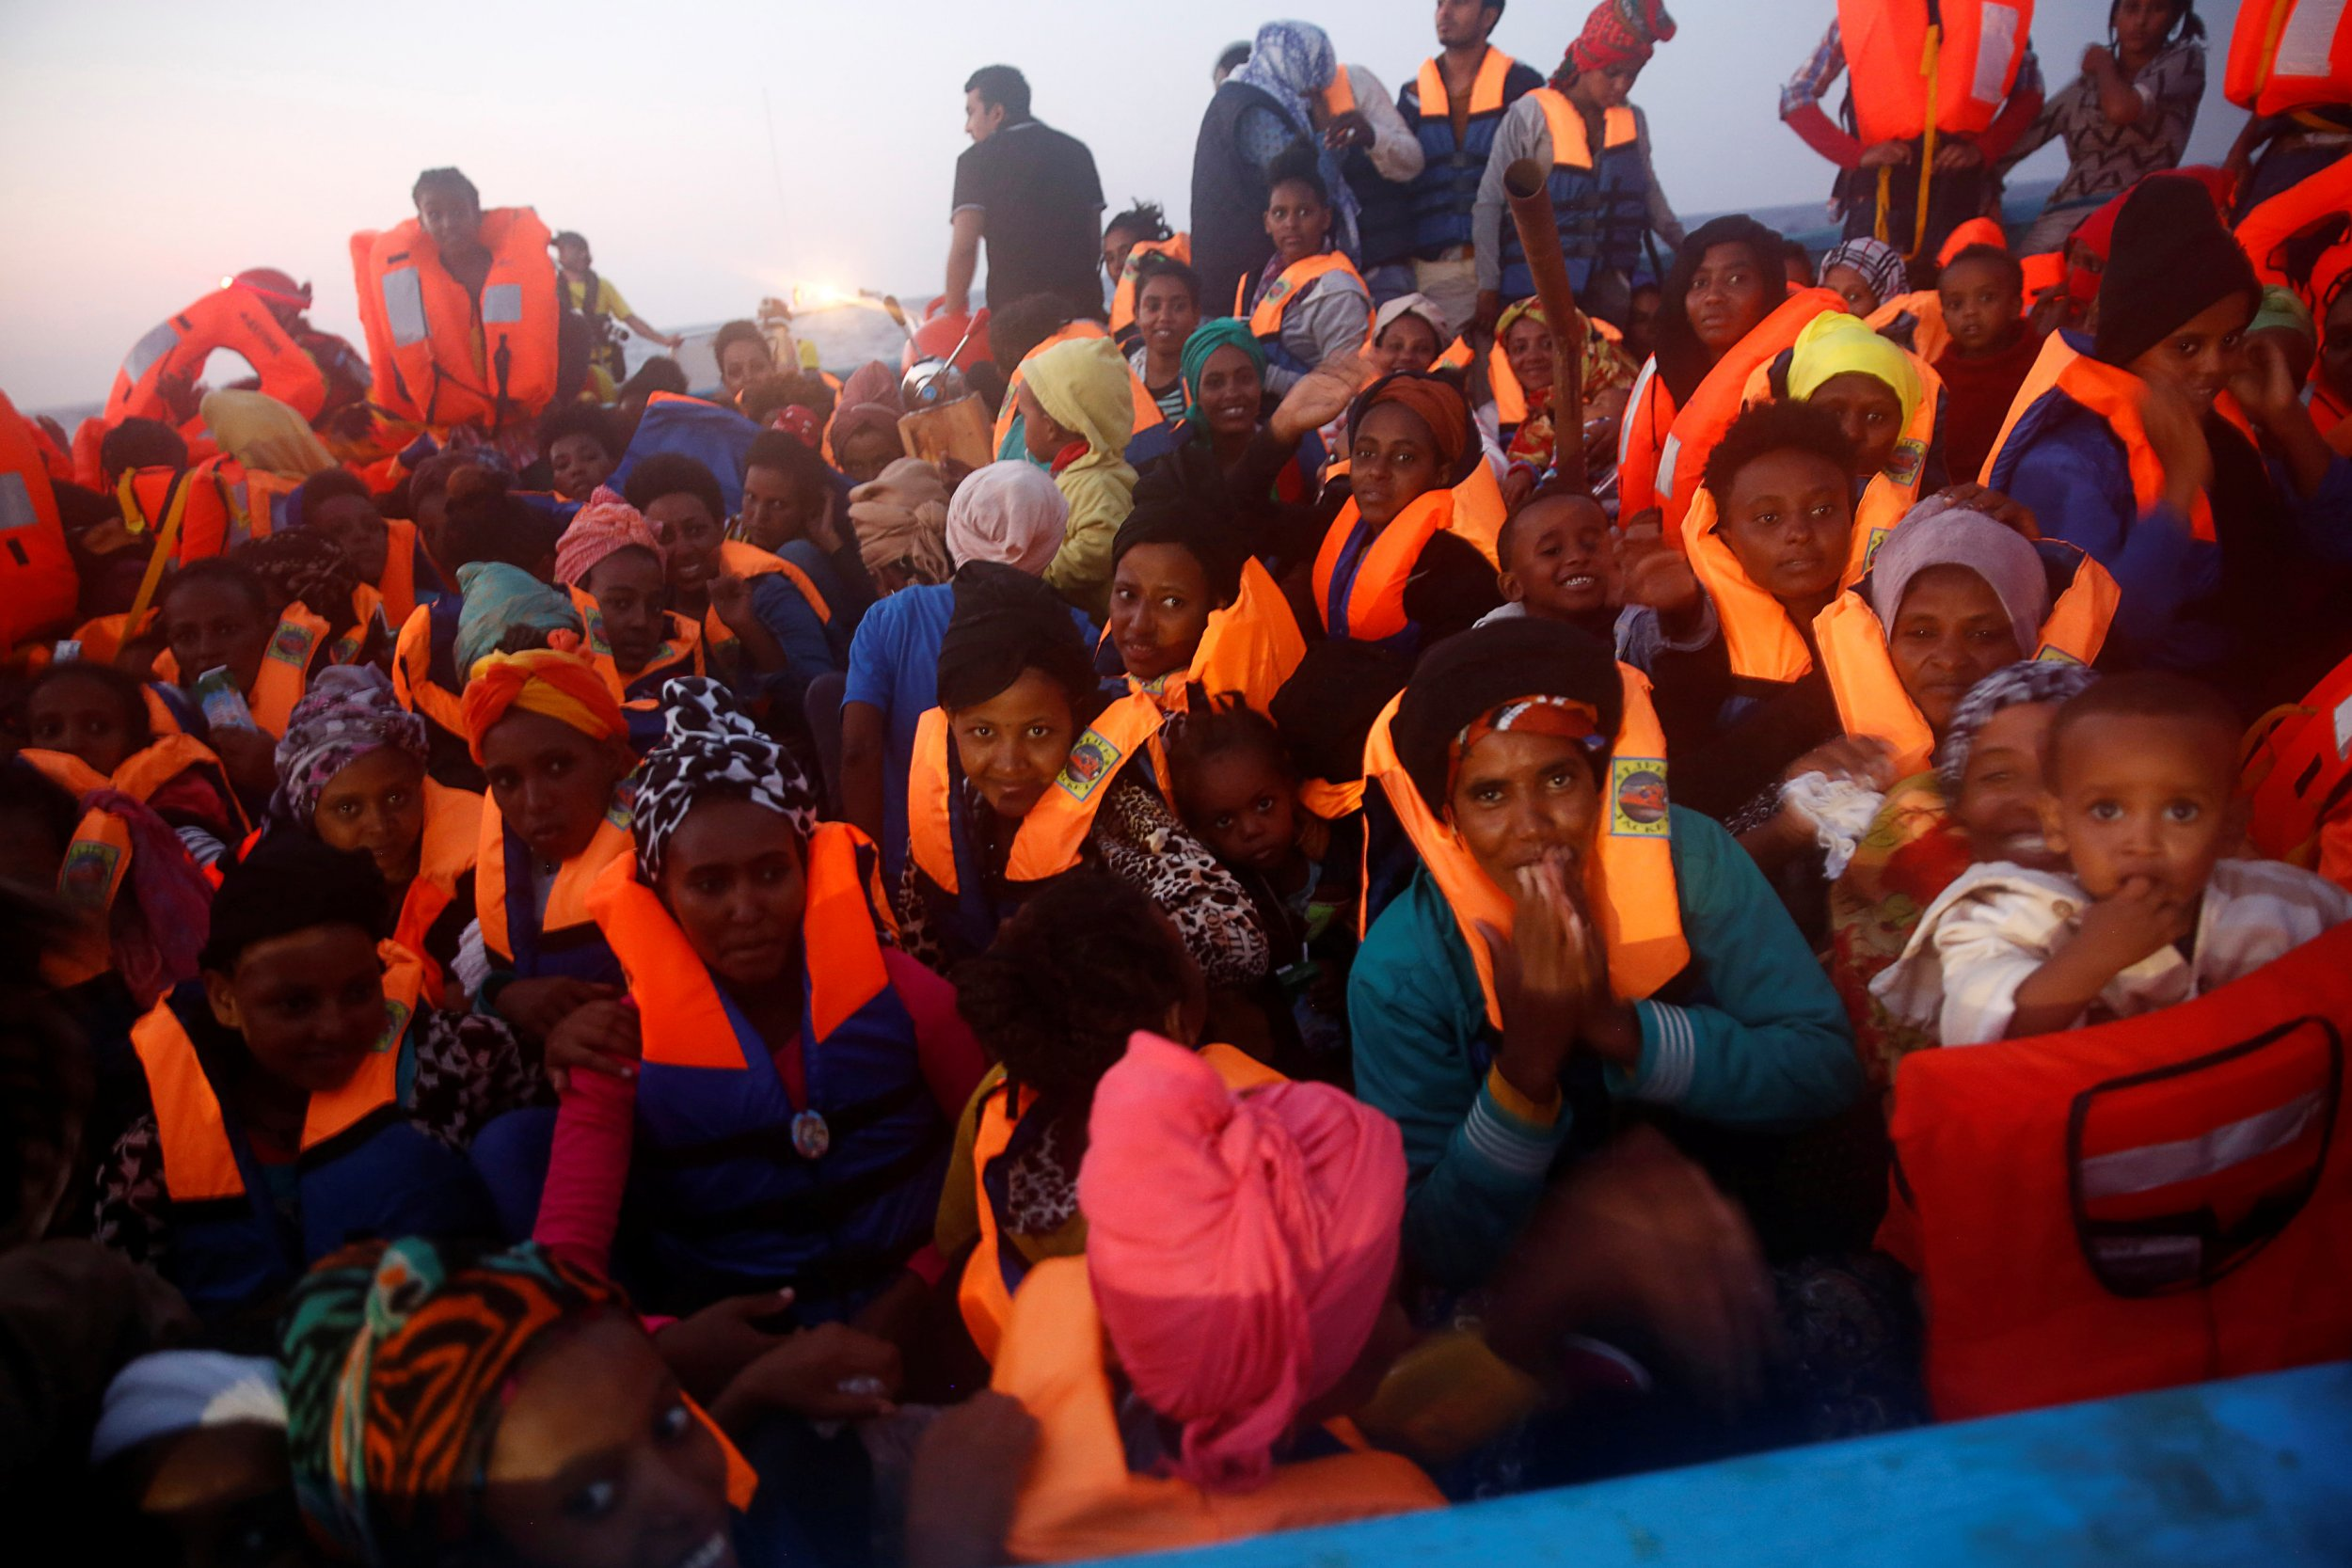 Eritrean migrants in Mediterranean Sea